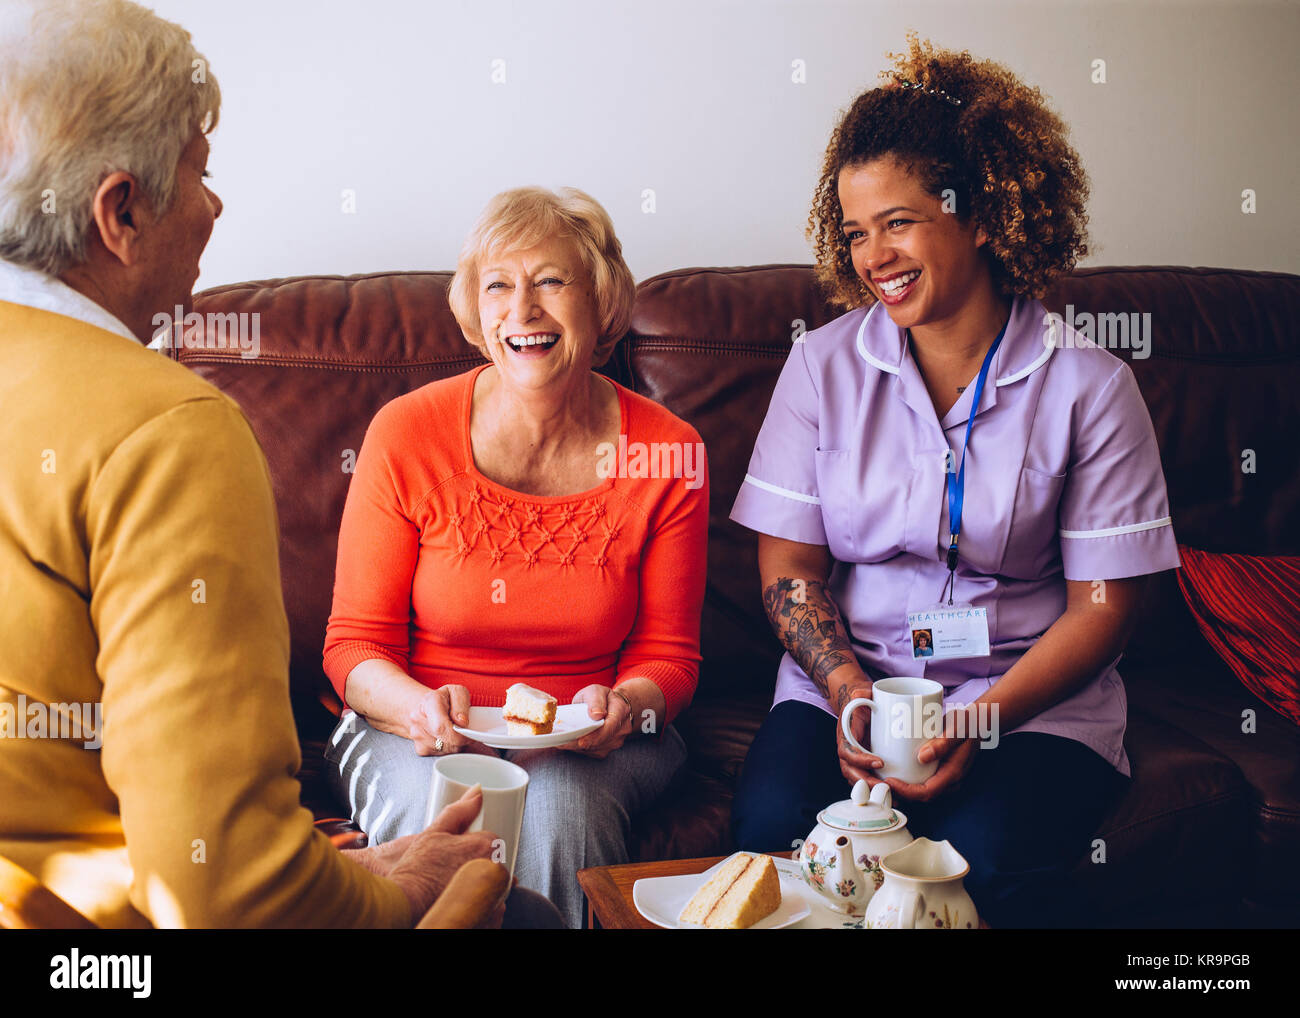 Caregiver Sharing Tea Time with her Patients - Stock Image